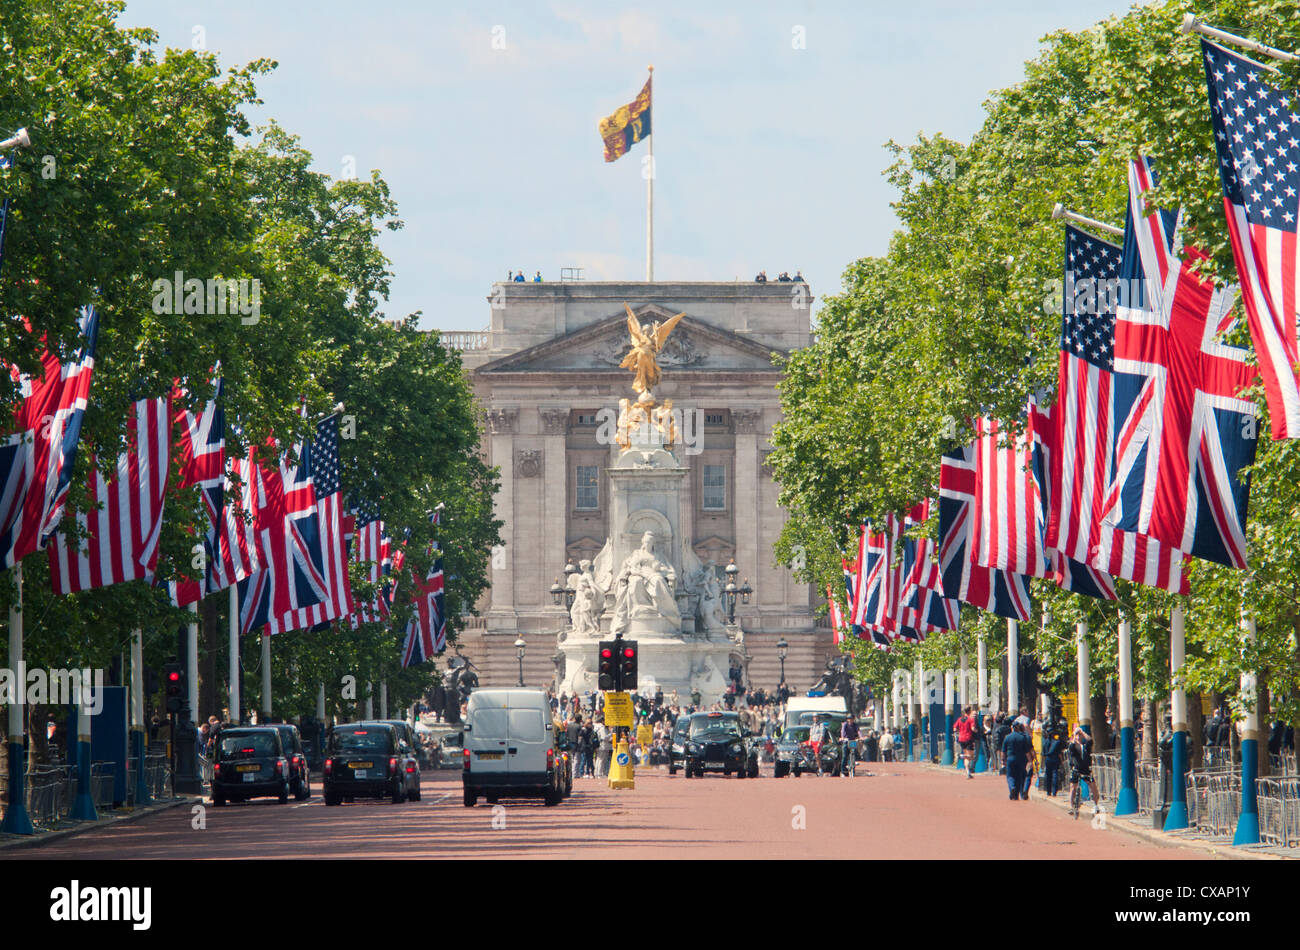 Flags lining the Mall to Buckingham Palace for President Obama's State Visit in 2011, London, England, United - Stock Image